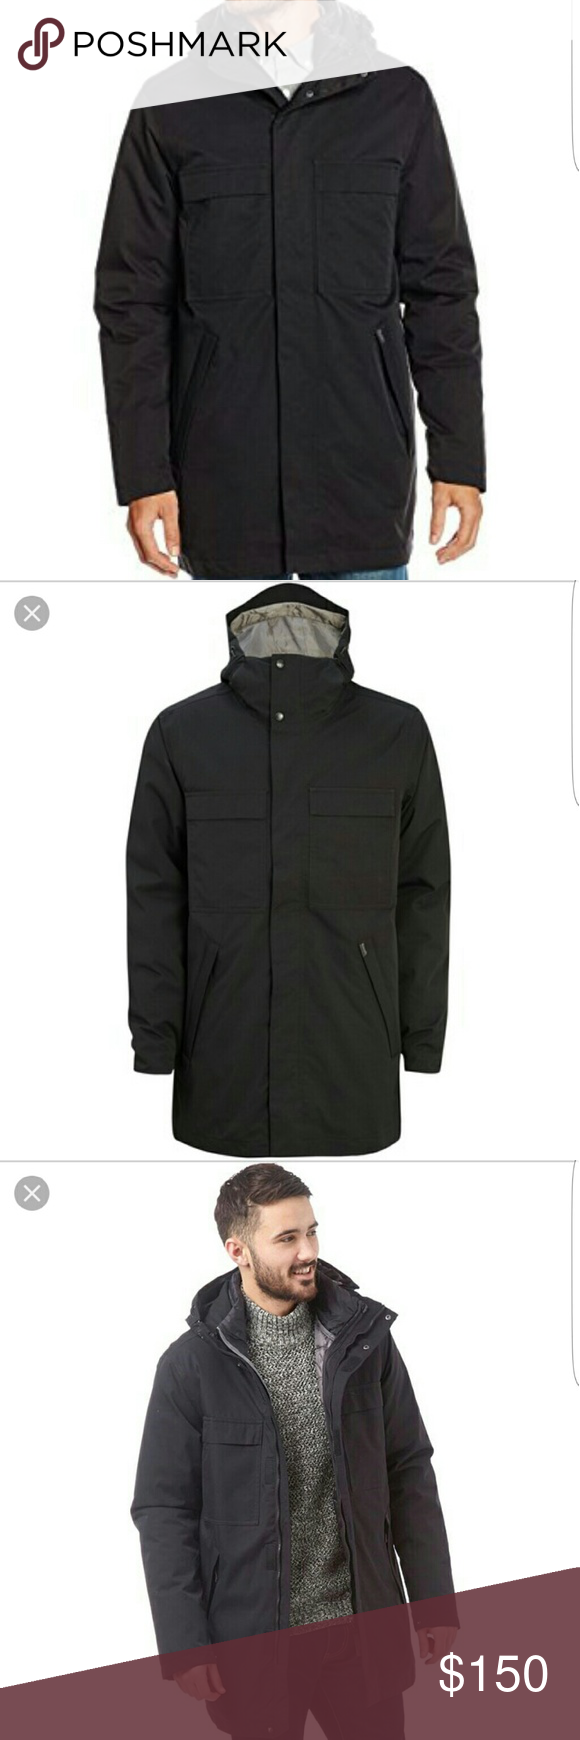 Bench Mens Inquire Jacket NWT | Jackets, Bench jackets ...